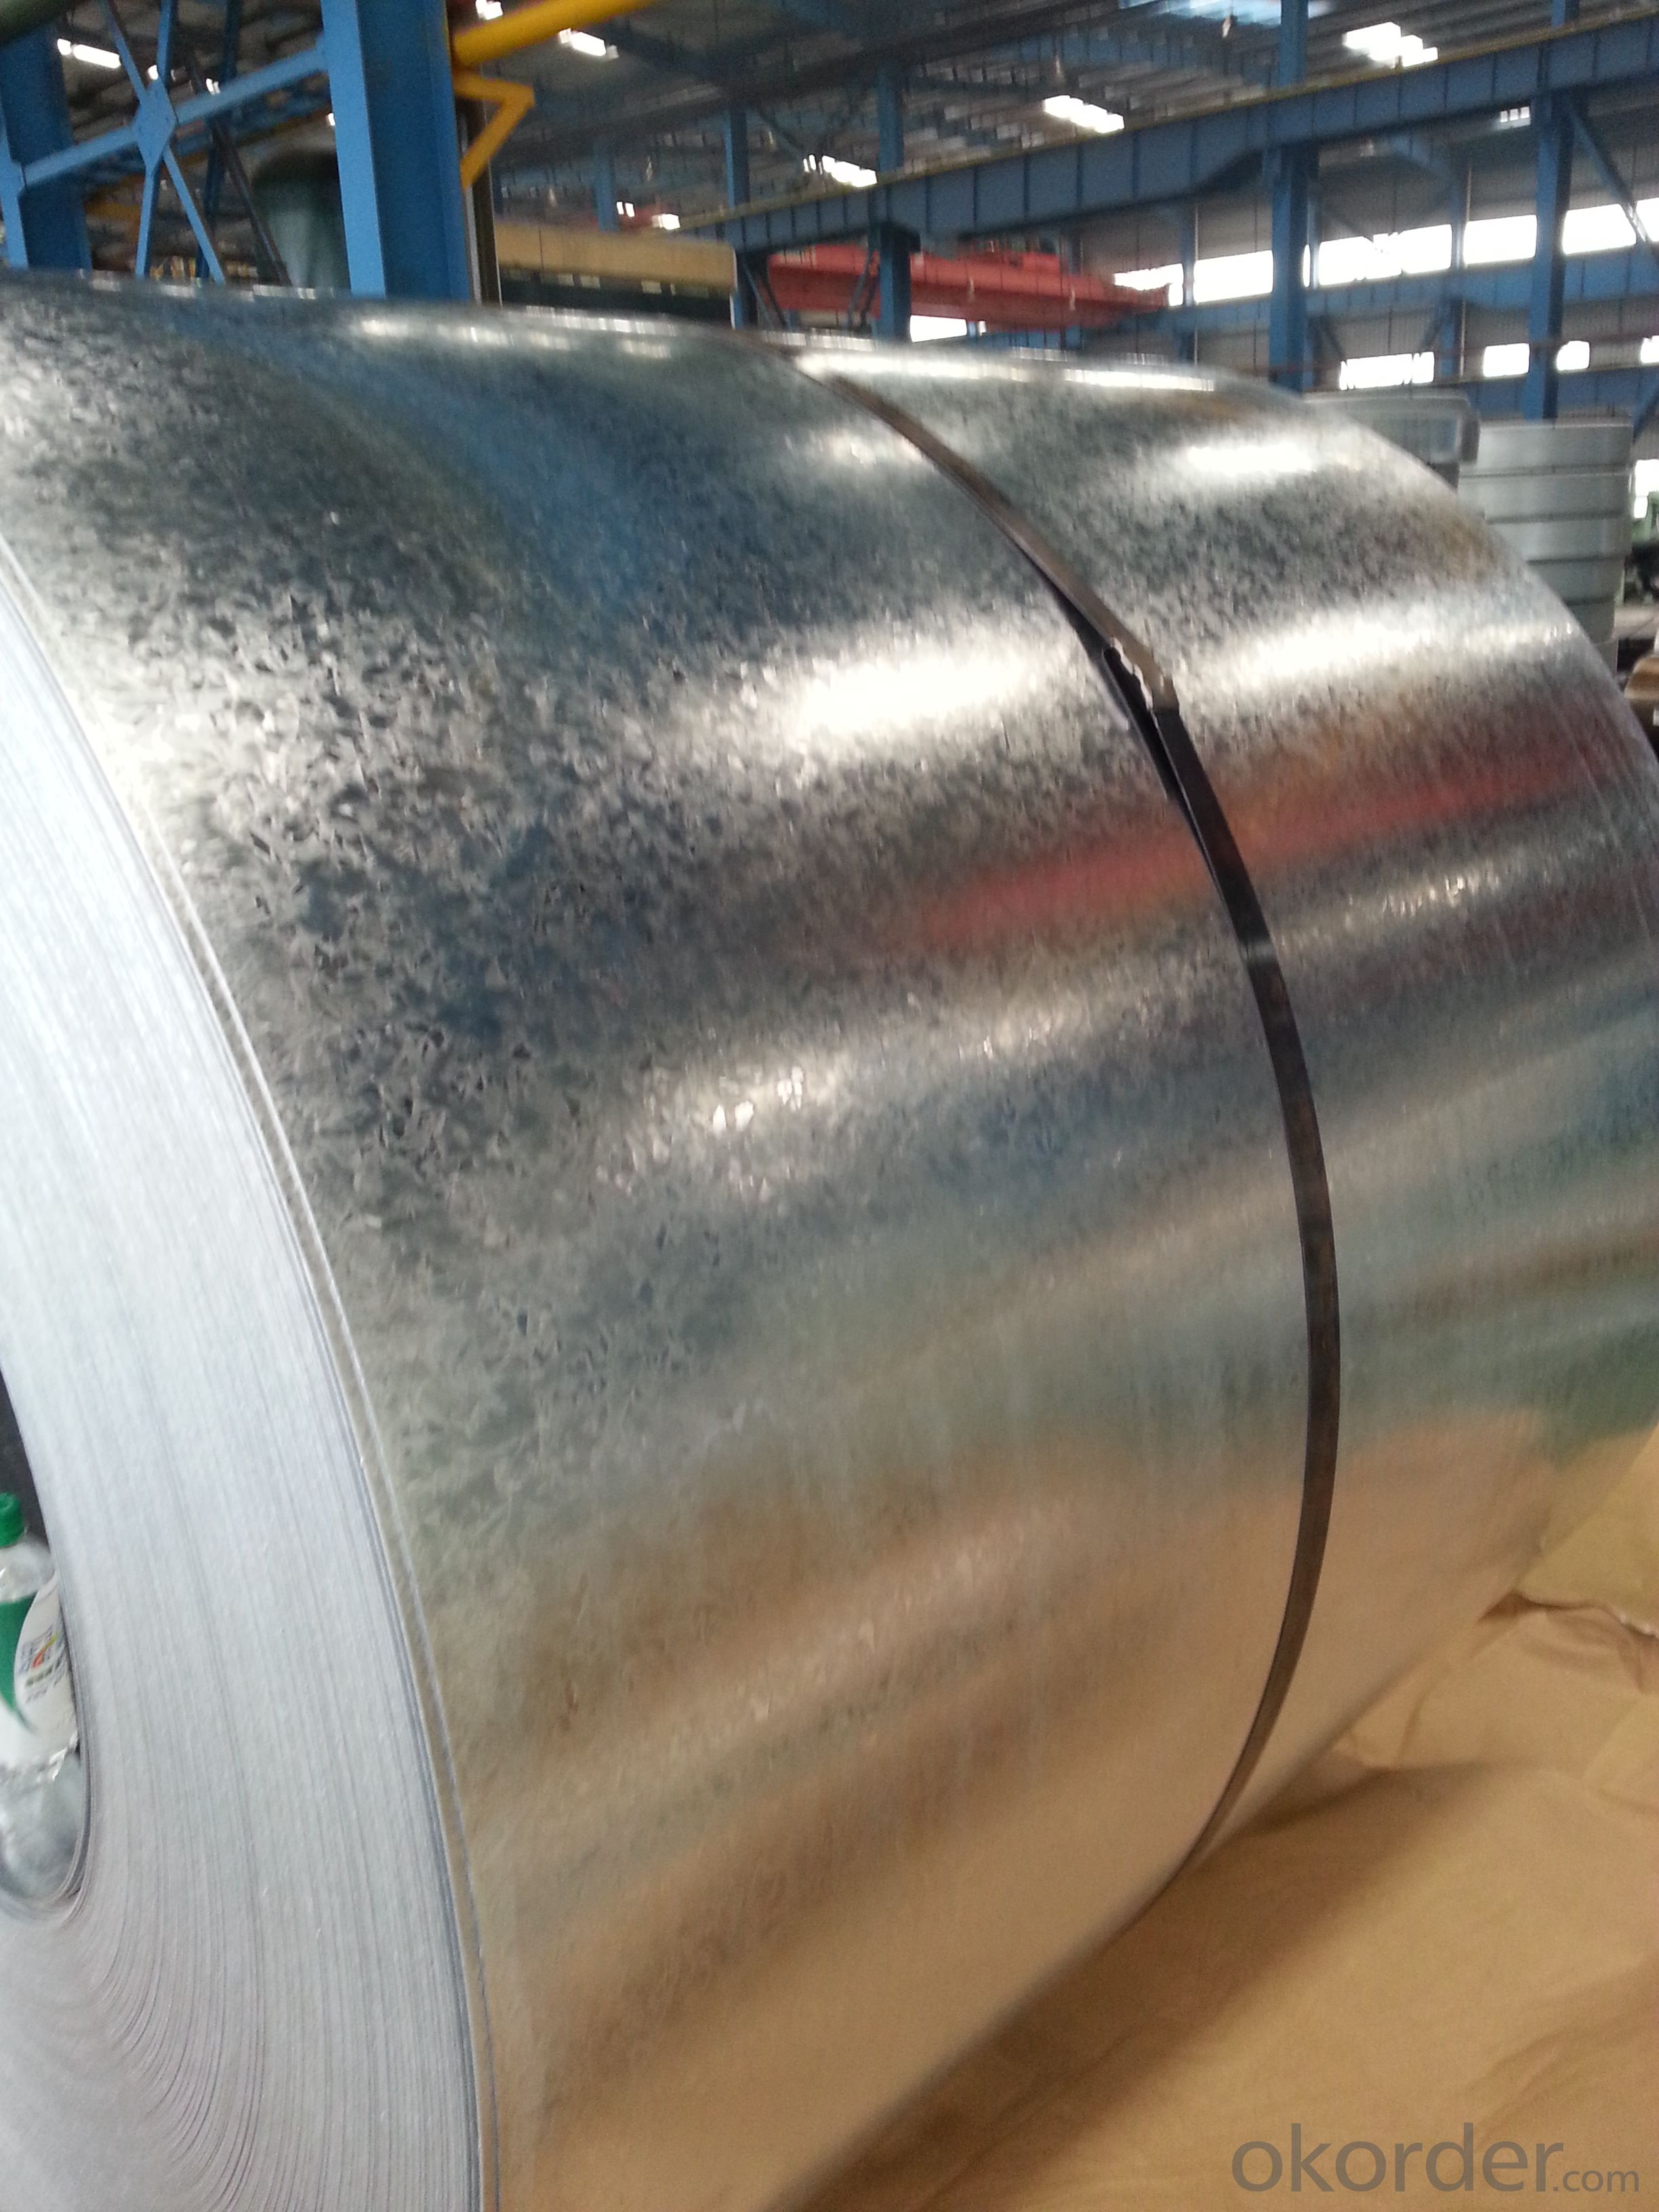 Hot-Dip Galvanized Steel in Coil